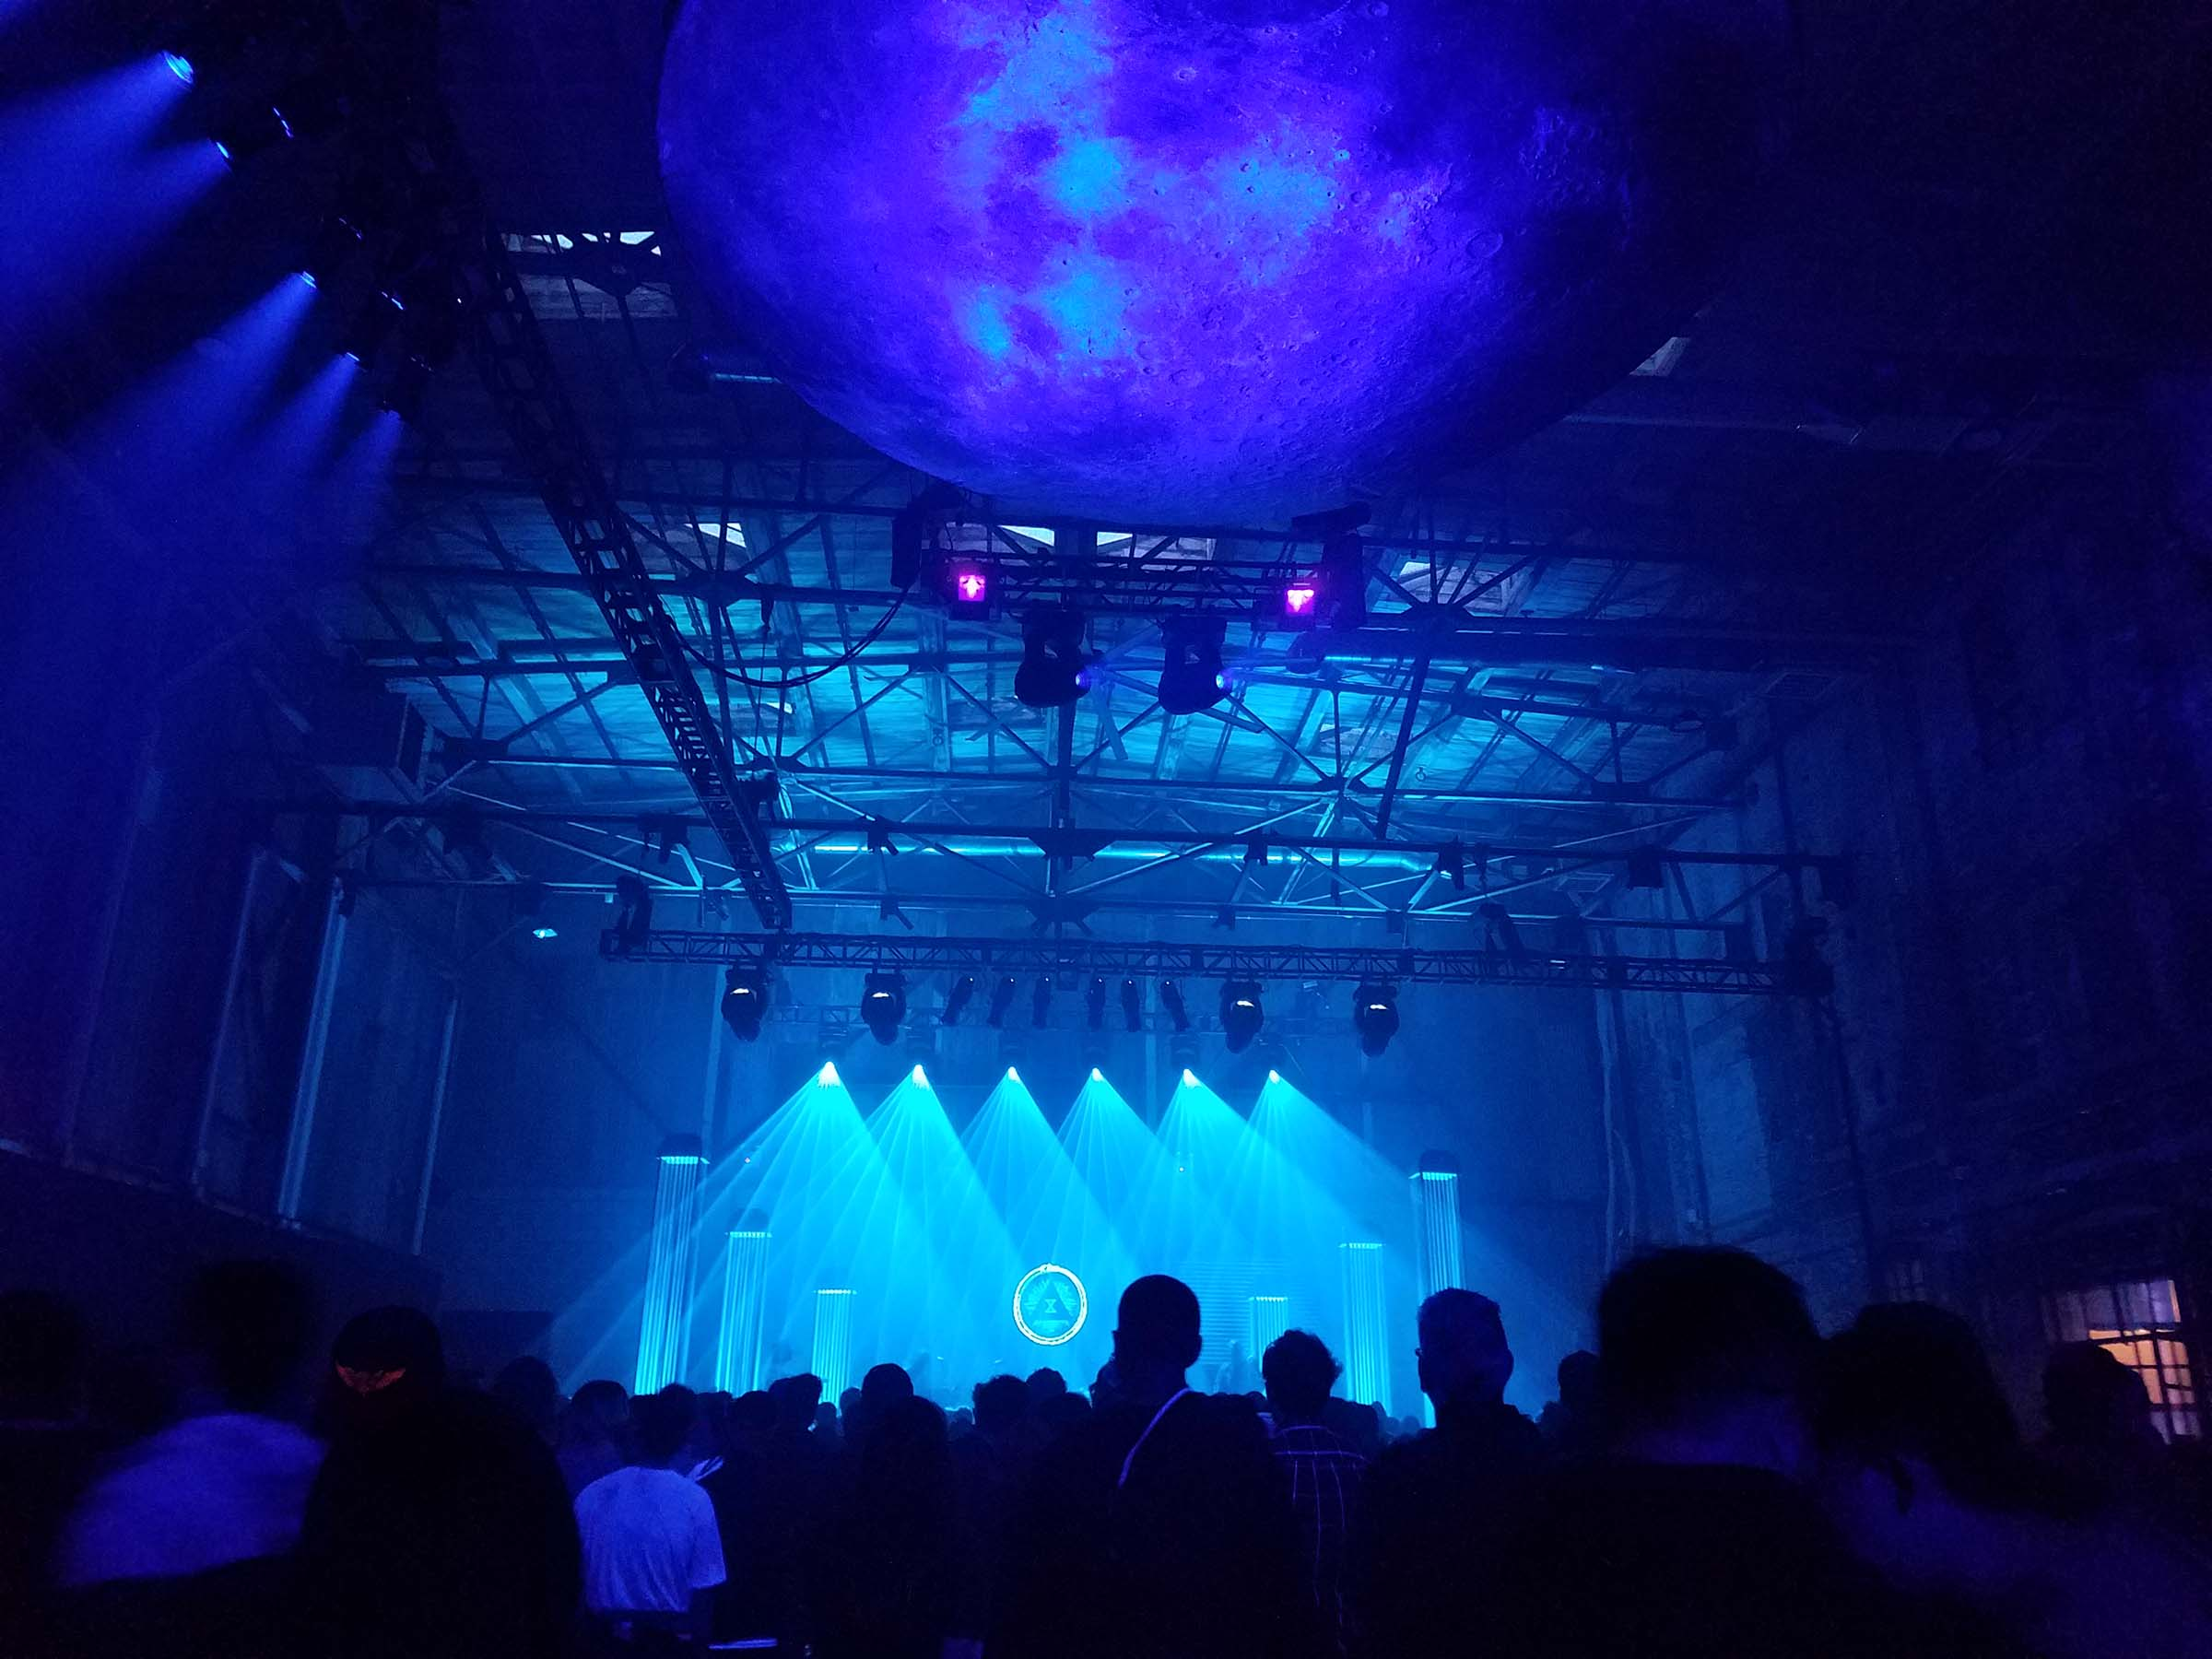 A performance hall, lit with dim blue lights. The stage is illuminated with brighter blue lights focused in triangular beams. The heads of the audience are visible in silhouette against the stage lighting. A disc decorated like the moon hangs from the ceiling.